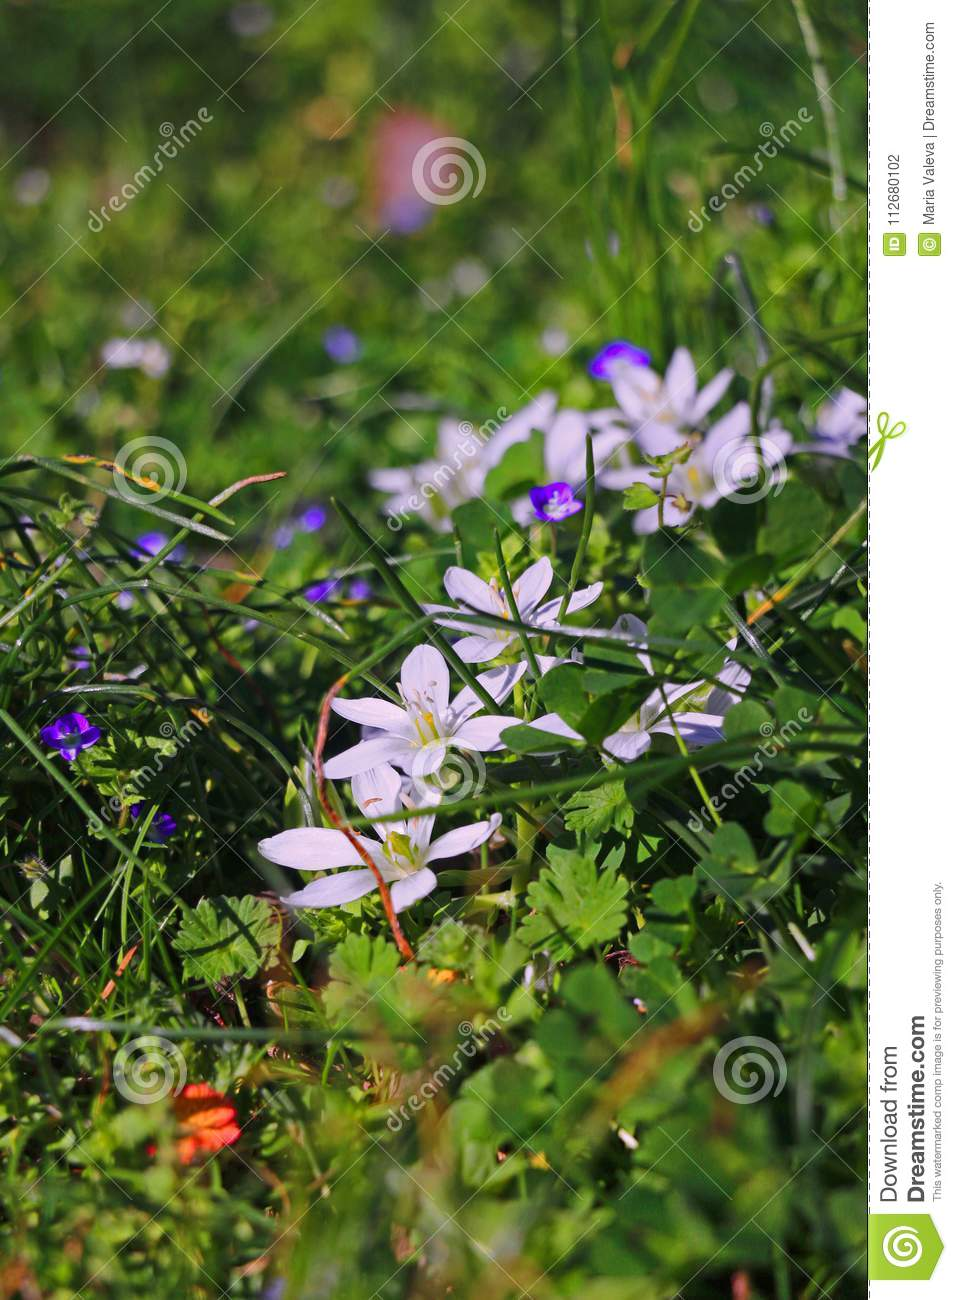 Green Grass With White Flowers Stock Photo Image Of Seasonal Pink